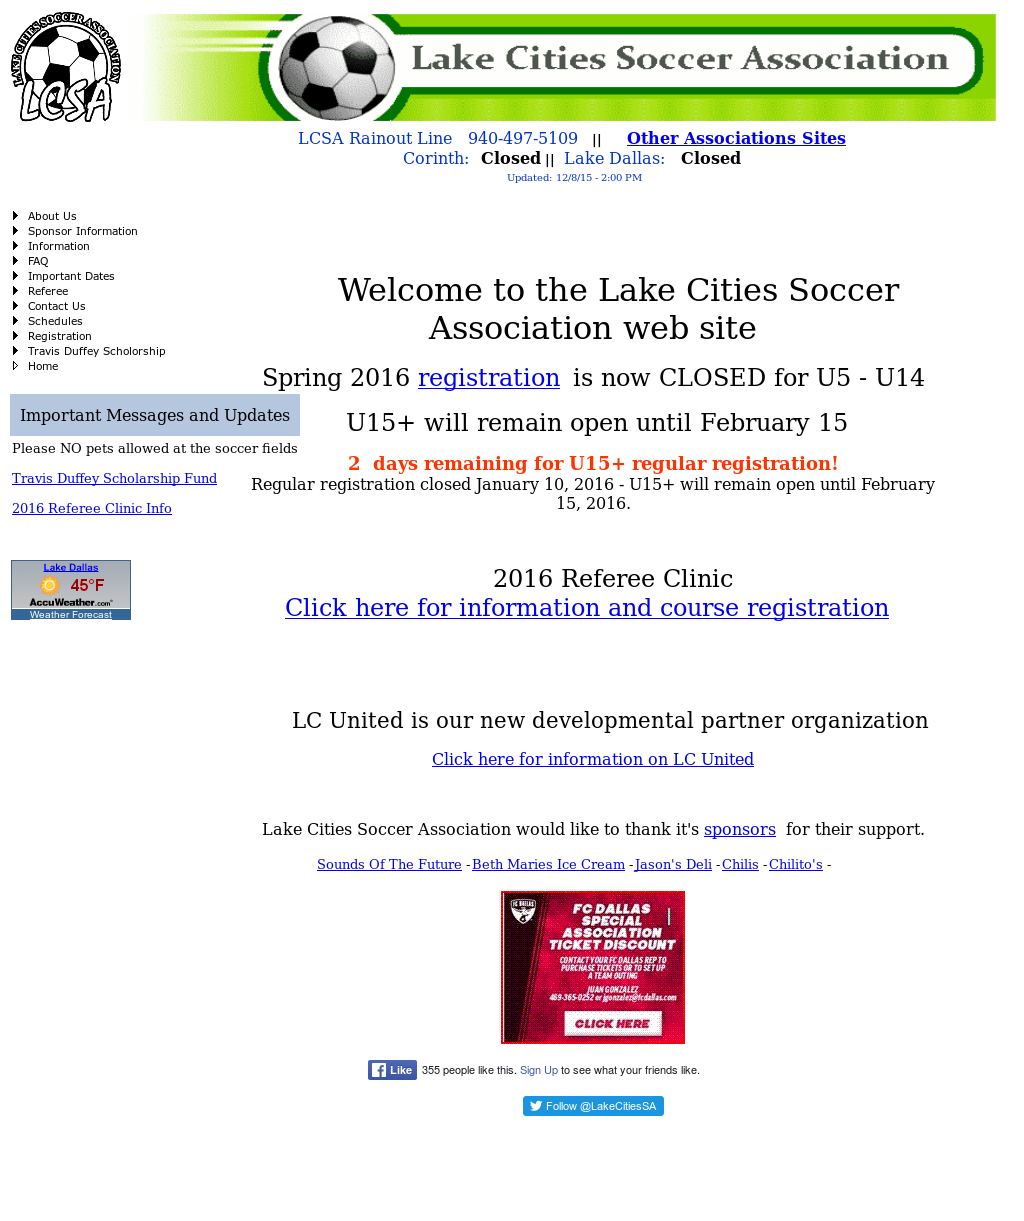 Lake Cities Soccer Association Competitors, Revenue and